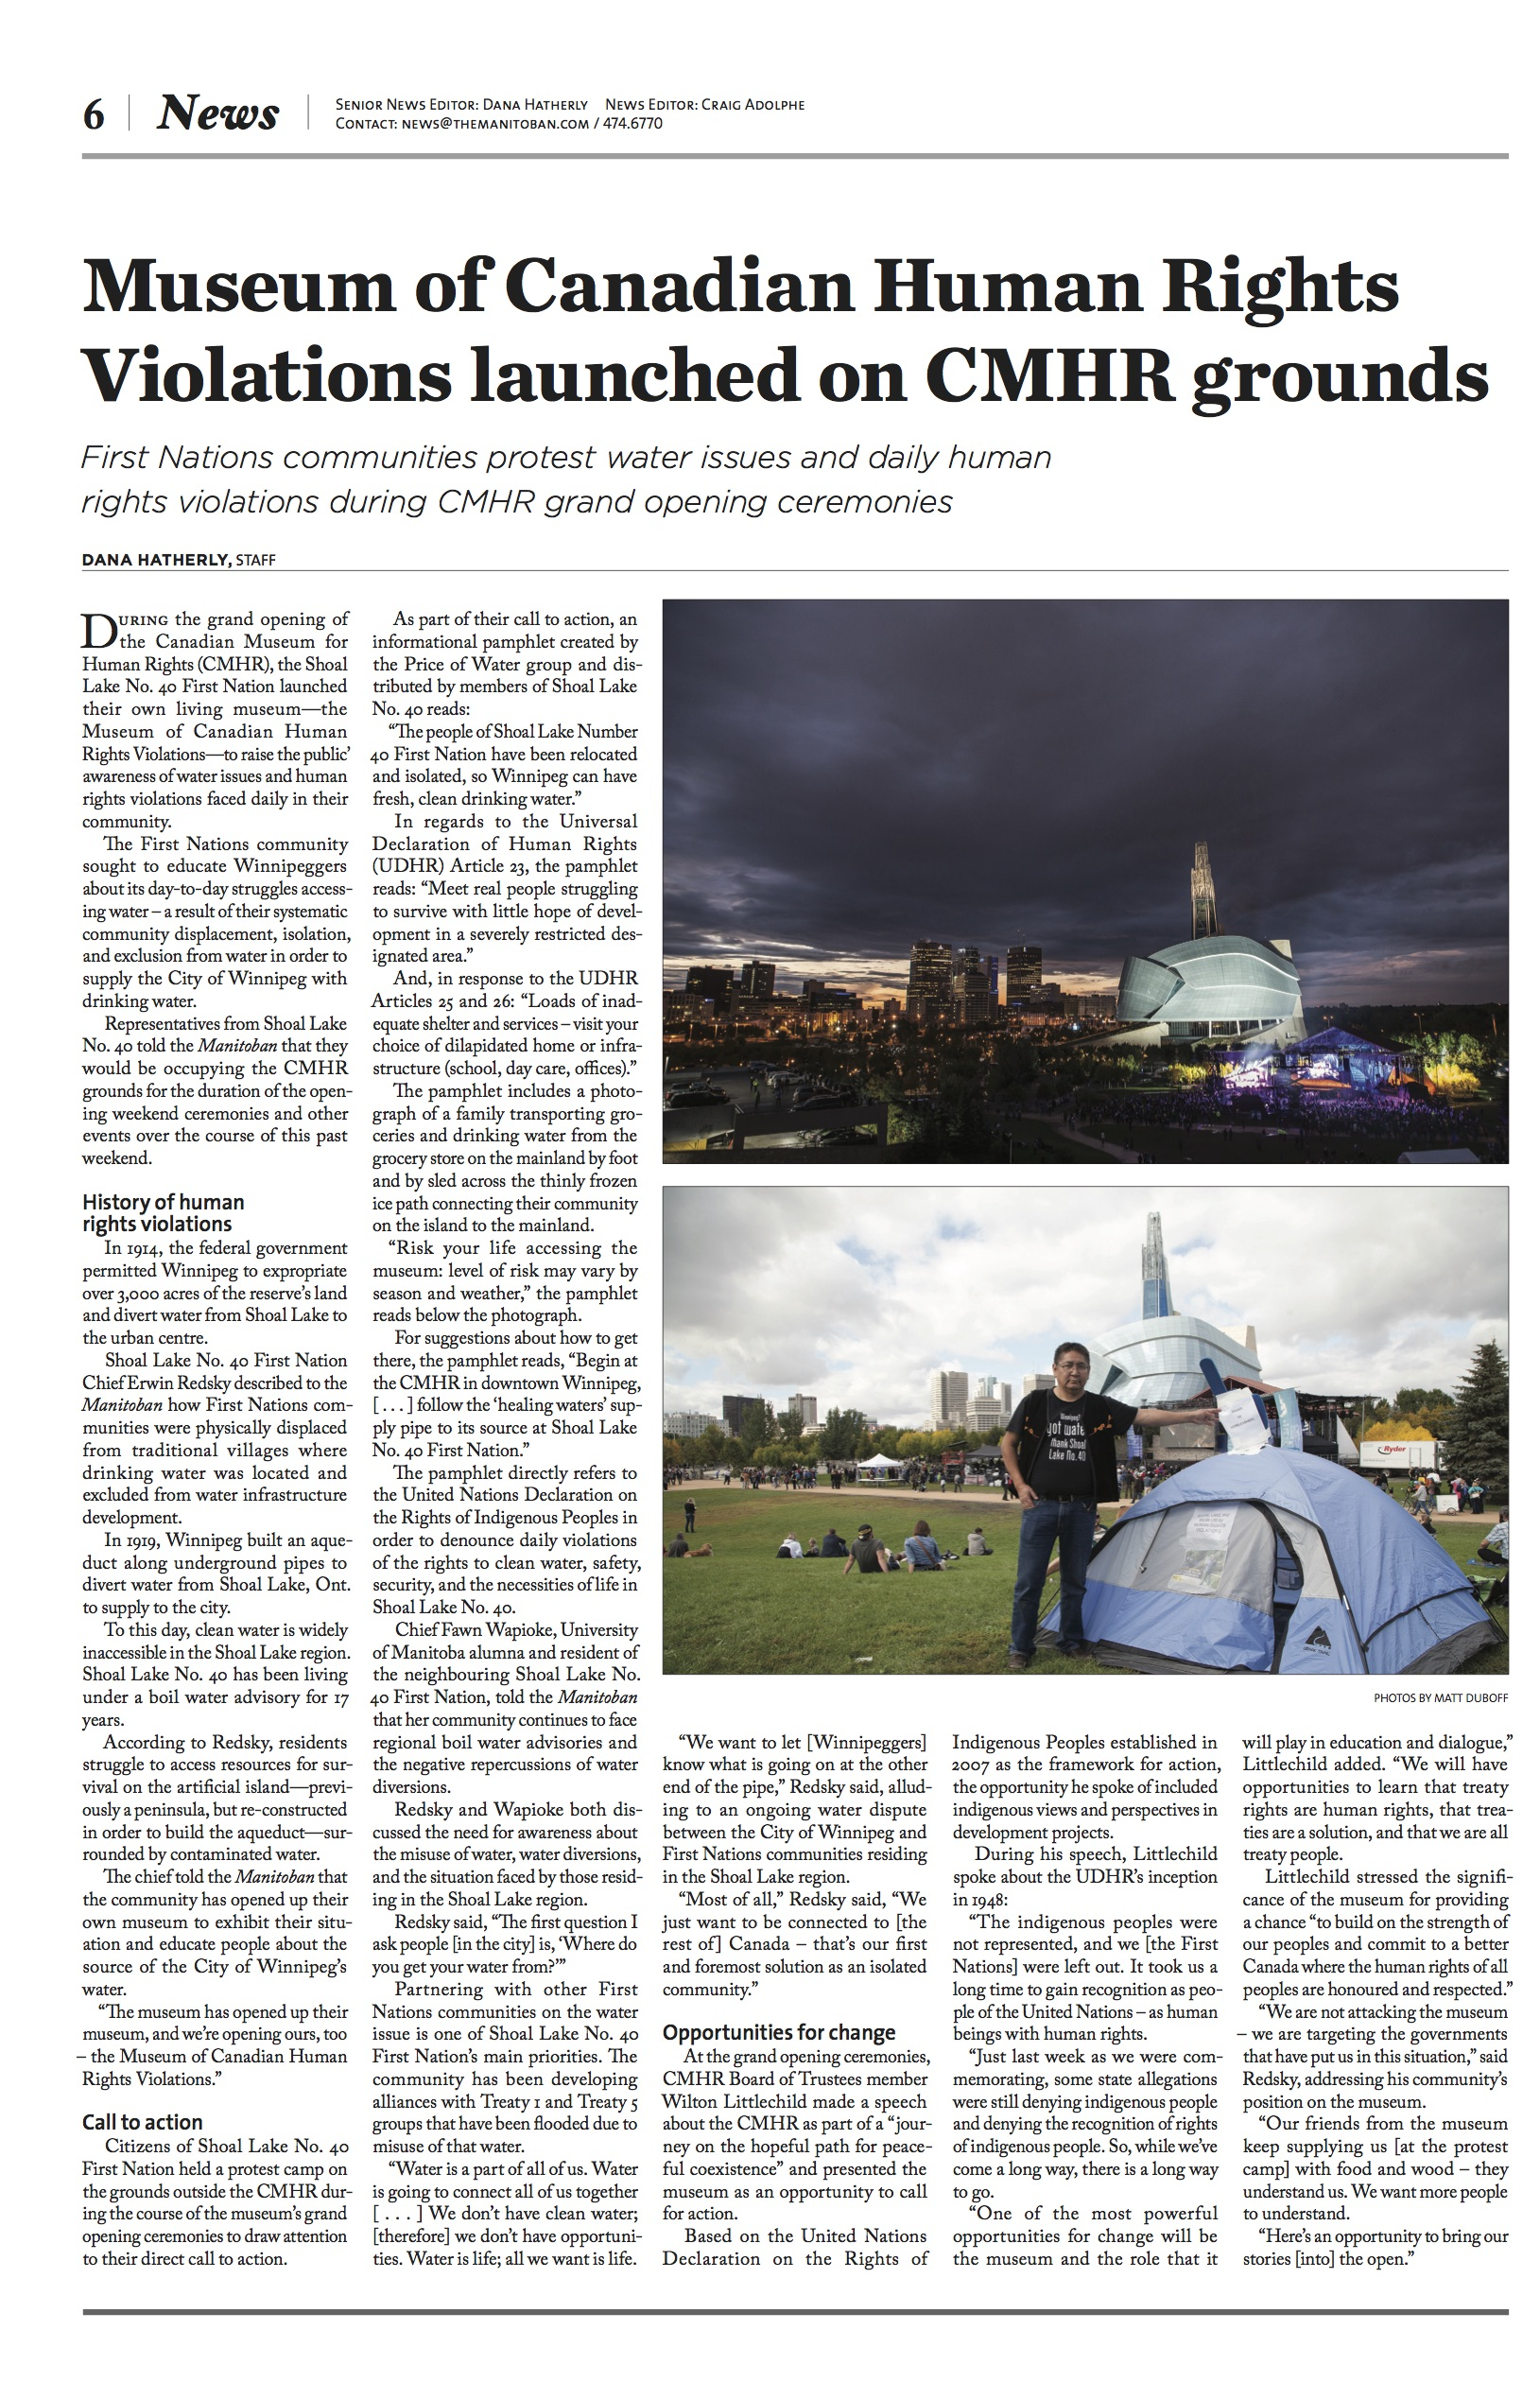 2014.09.23 - The Manitoban - Page 6.jpg